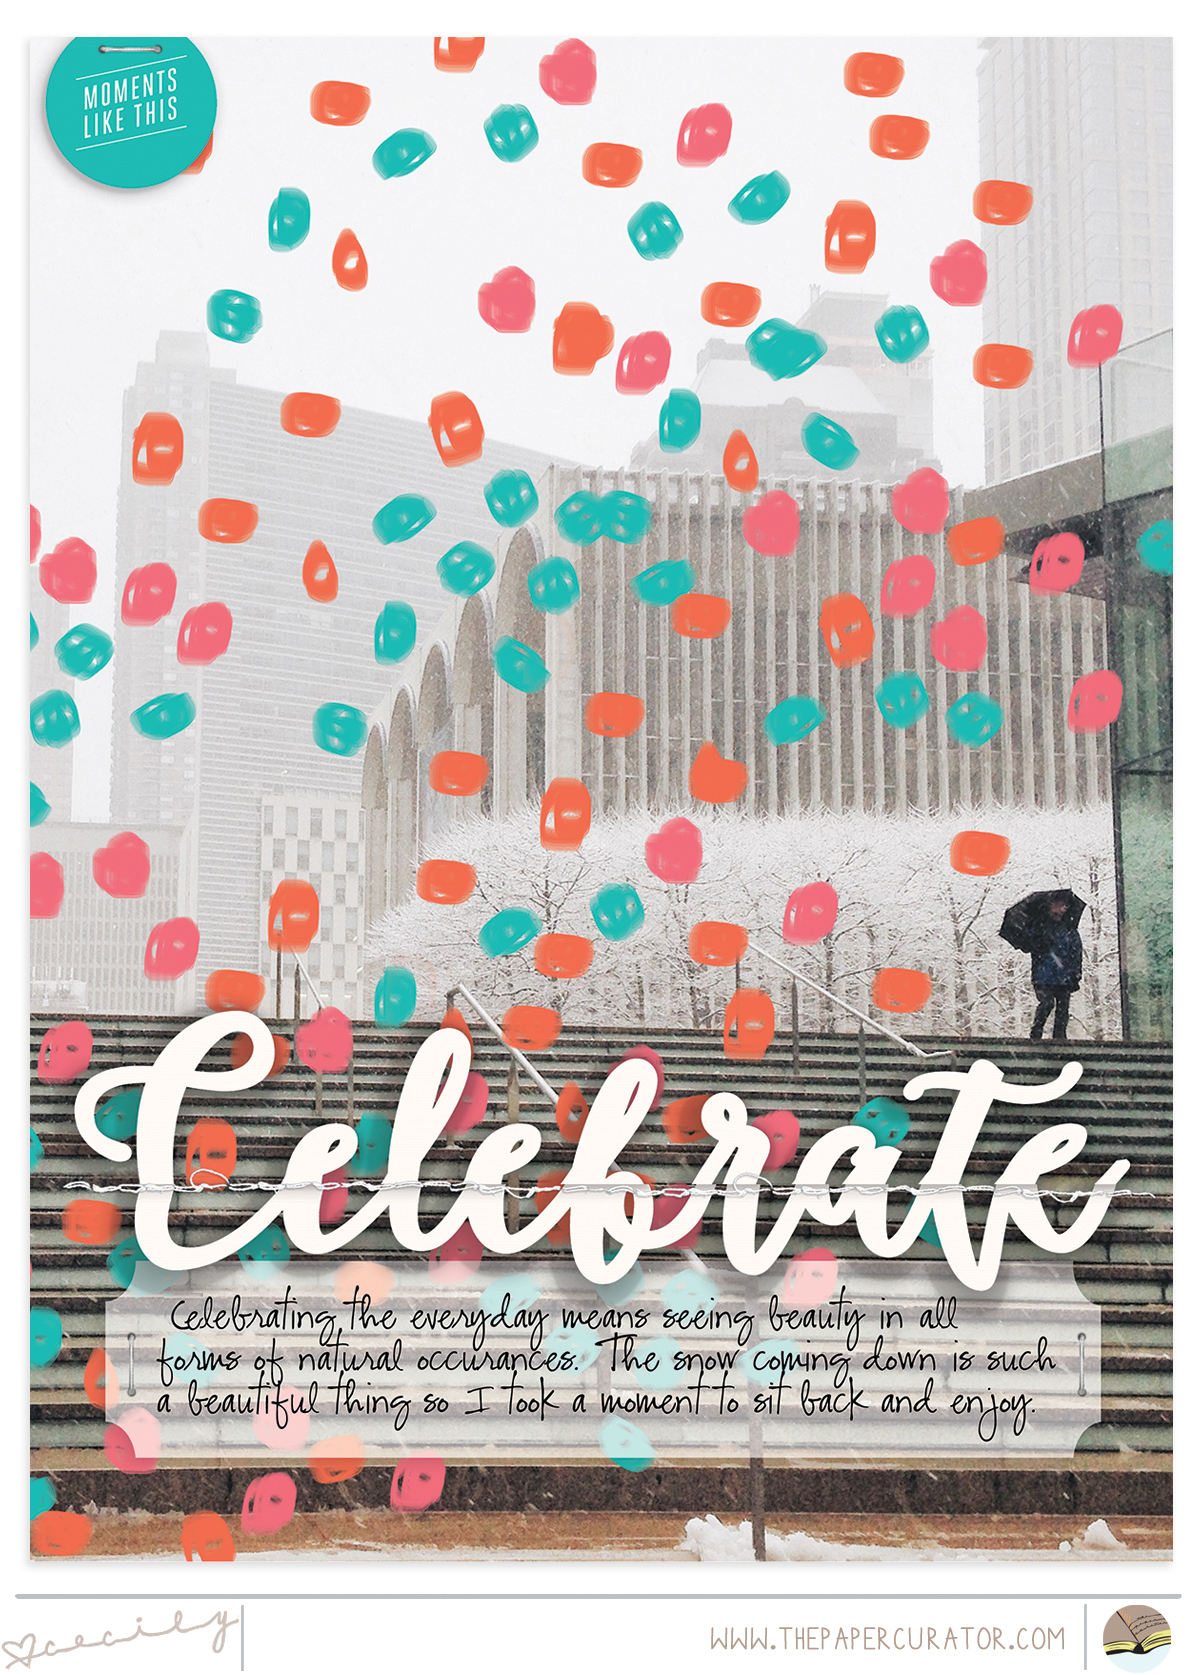 Sunday Sketch Series No. 53 with 'Celebrate' Scrapbook Sketch | The Paper Curator